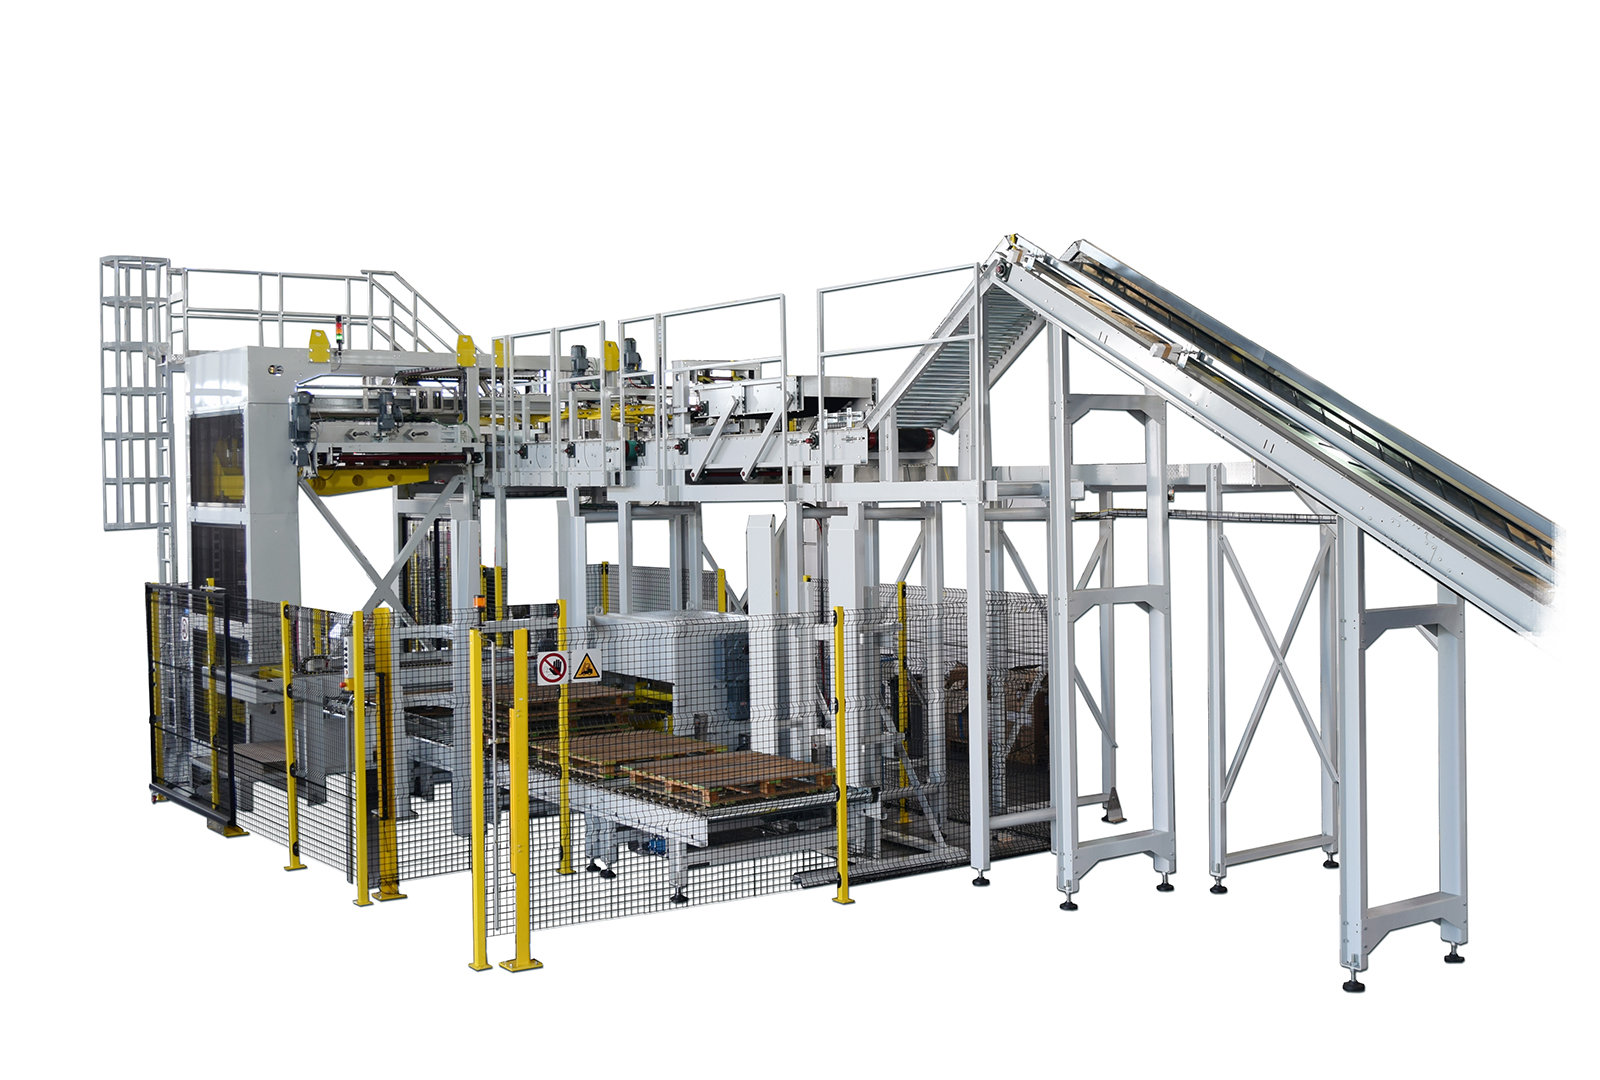 Palletisation Solutions